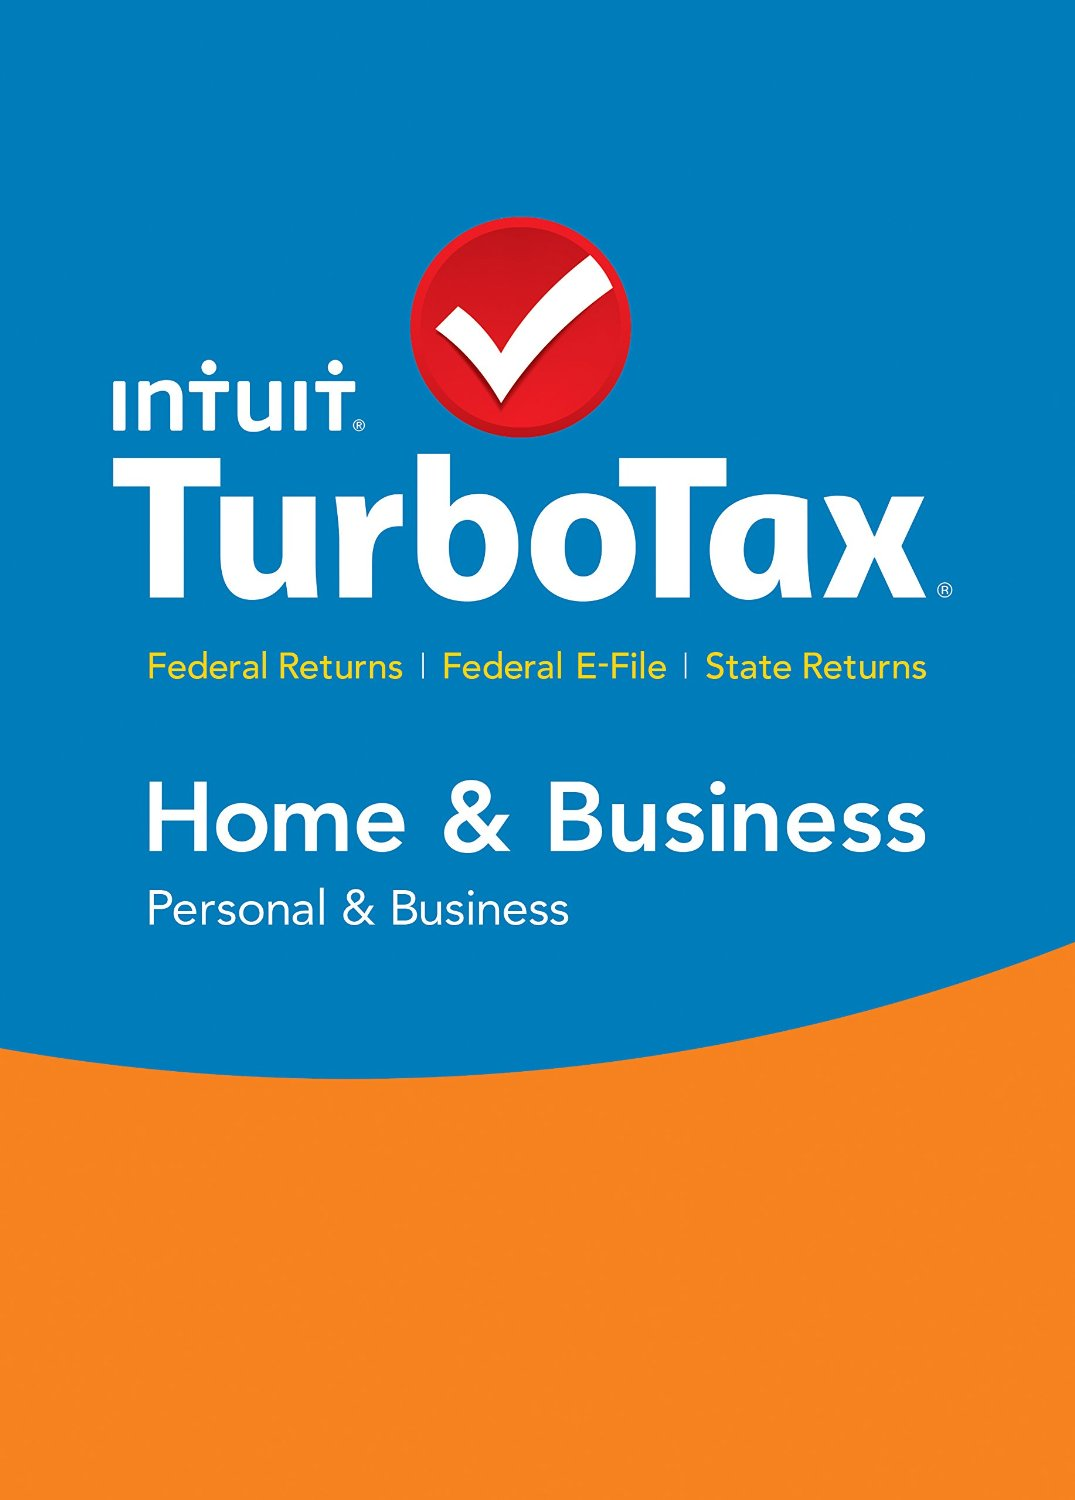 Turbo Tax Software up to 40% off on Amazon